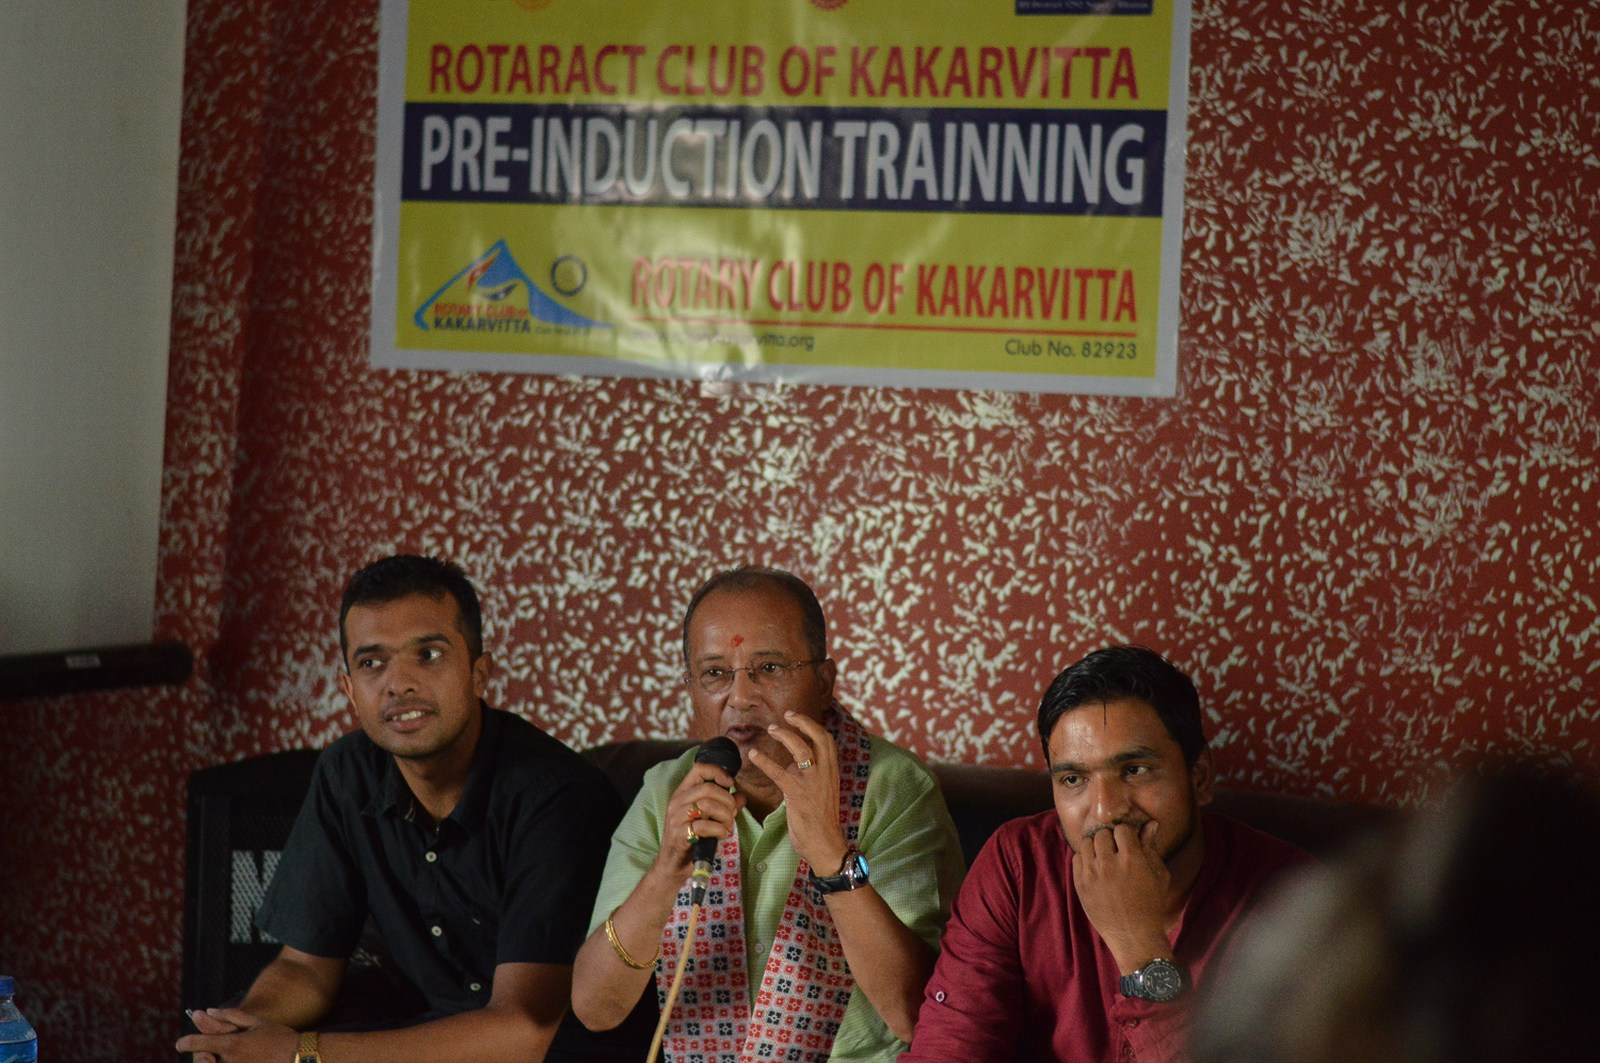 Pre-Induction-Training-of-Rotaract-Club-of-Kakarvitta-Rotary-Club-of-Kakarvitta-24